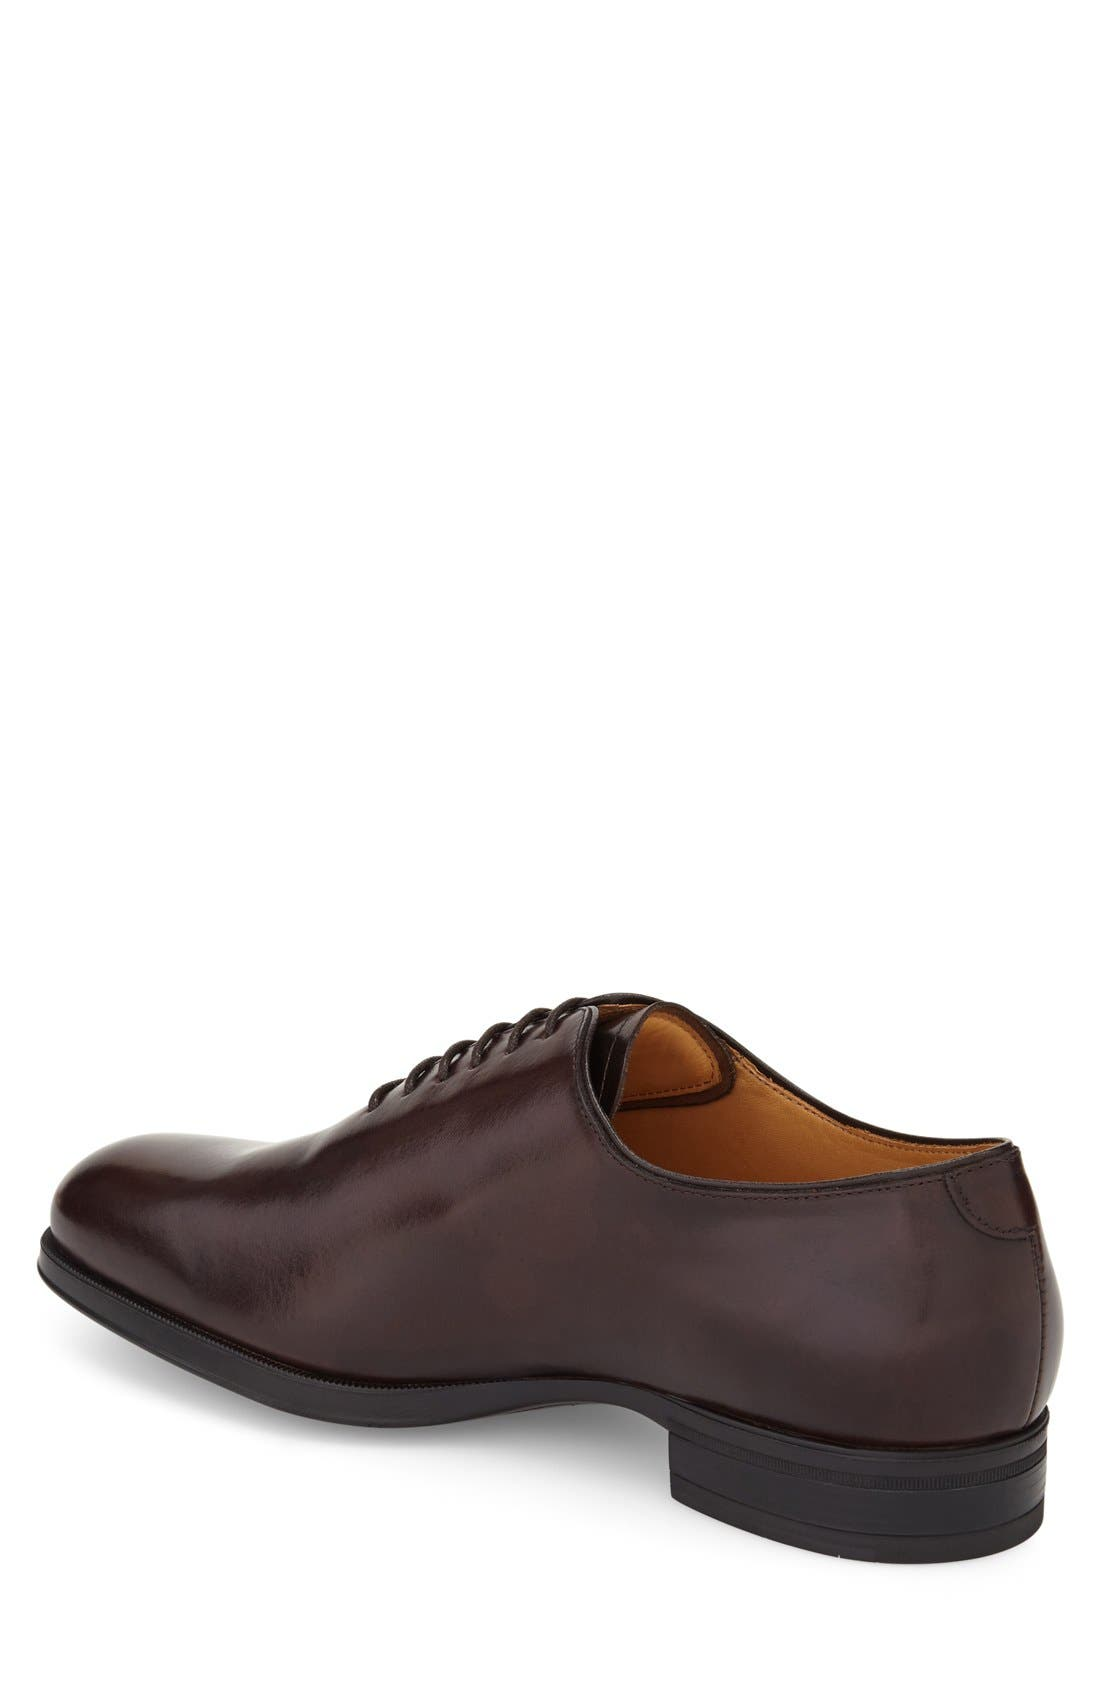 'Tarby' Wholecut Oxford,                             Alternate thumbnail 8, color,